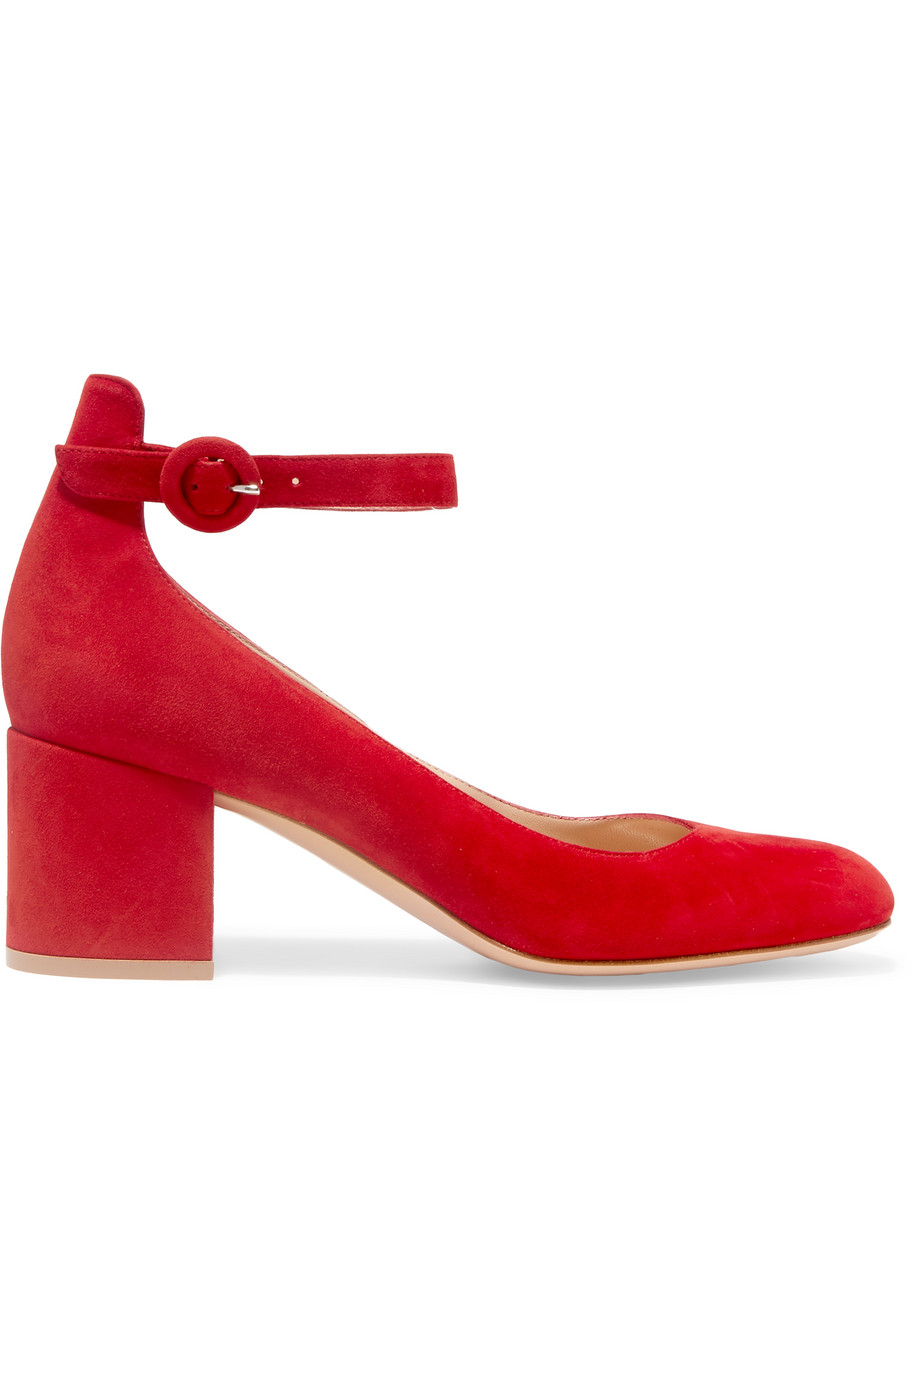 Gianvito Rossi Suede Pumps, Red, Women's US Size: 5, Size: 35.5